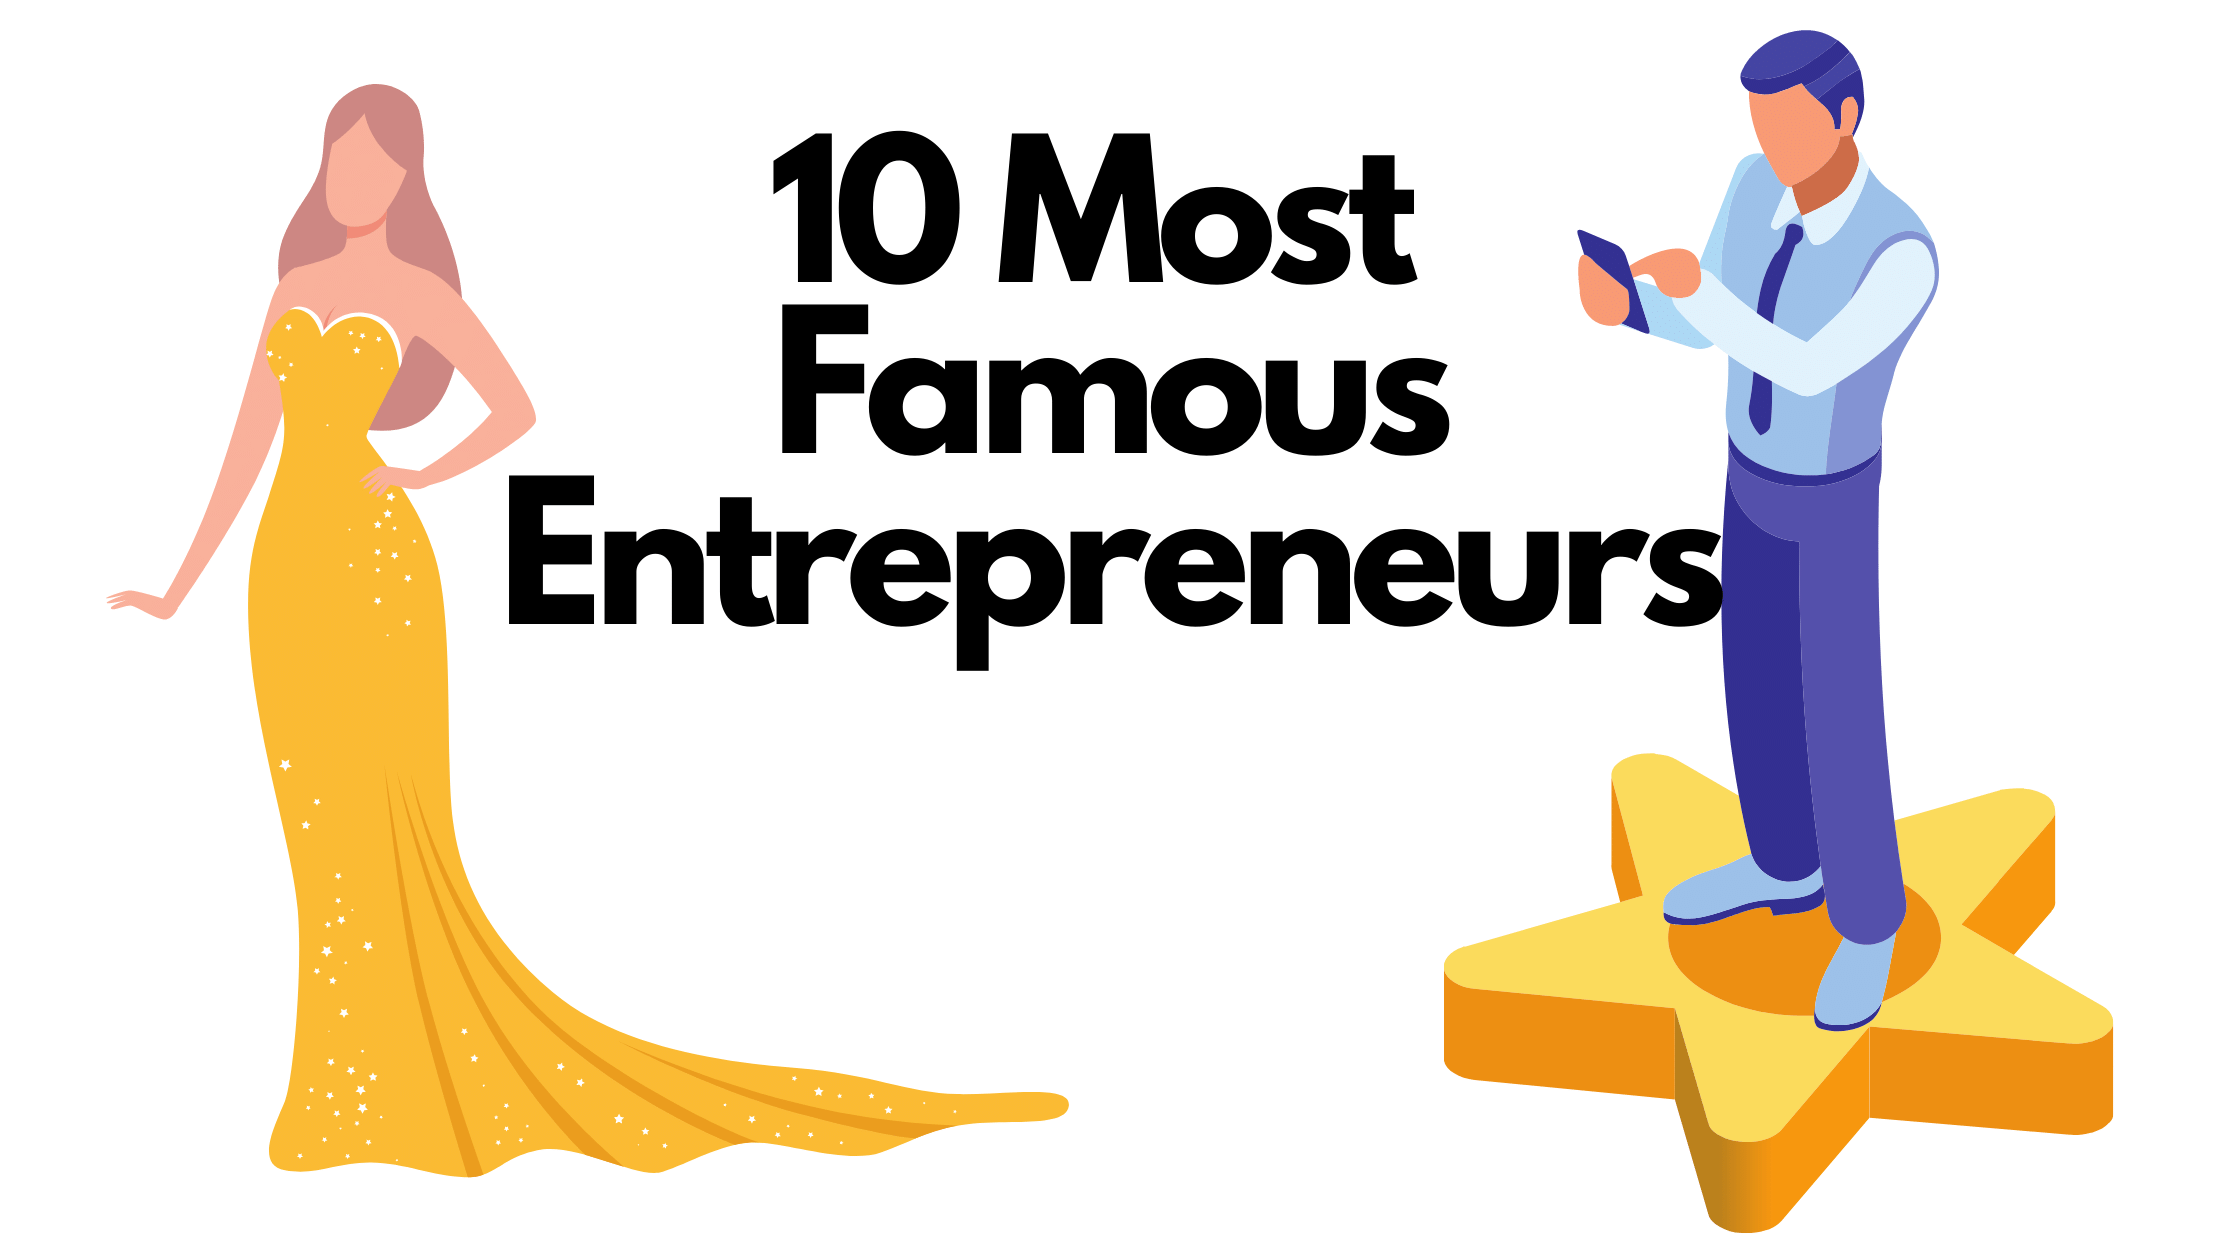 10 Most Famous Entrepreneurs